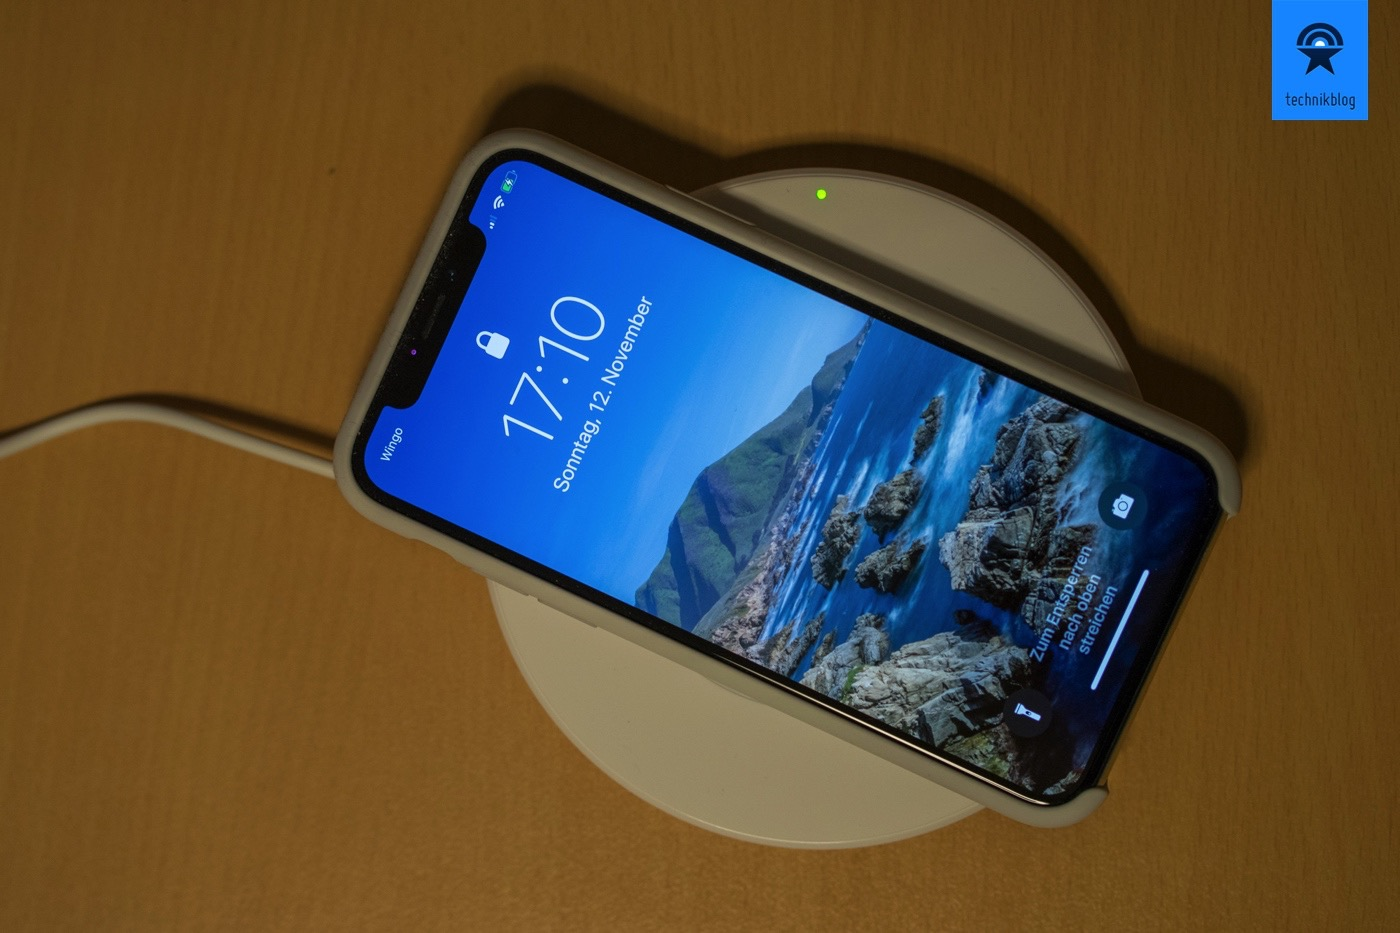 Beklin Boost Up - kabelloses Charging Pad mit dem iPhone X